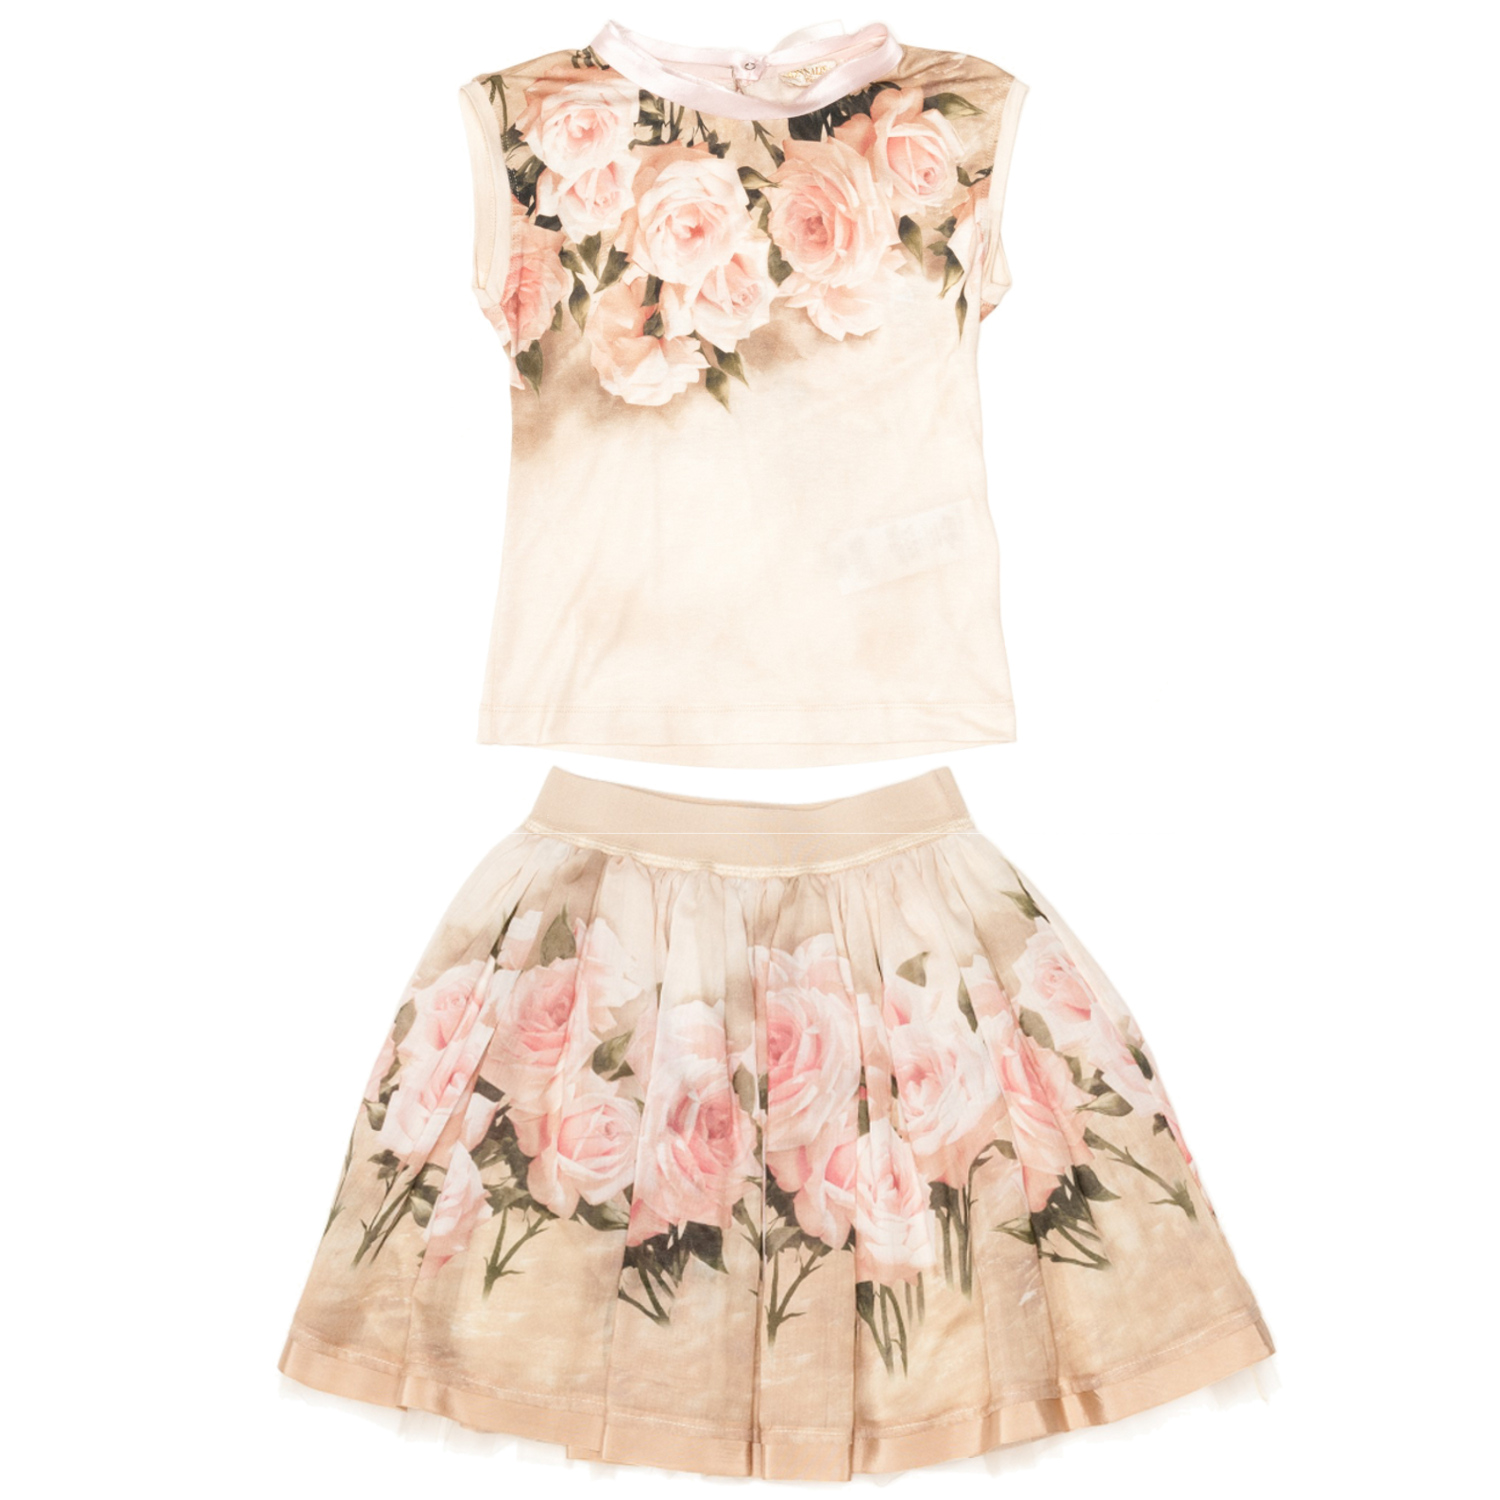 Monnalisa Chic beige cotton t-shirt and skirt with rose print